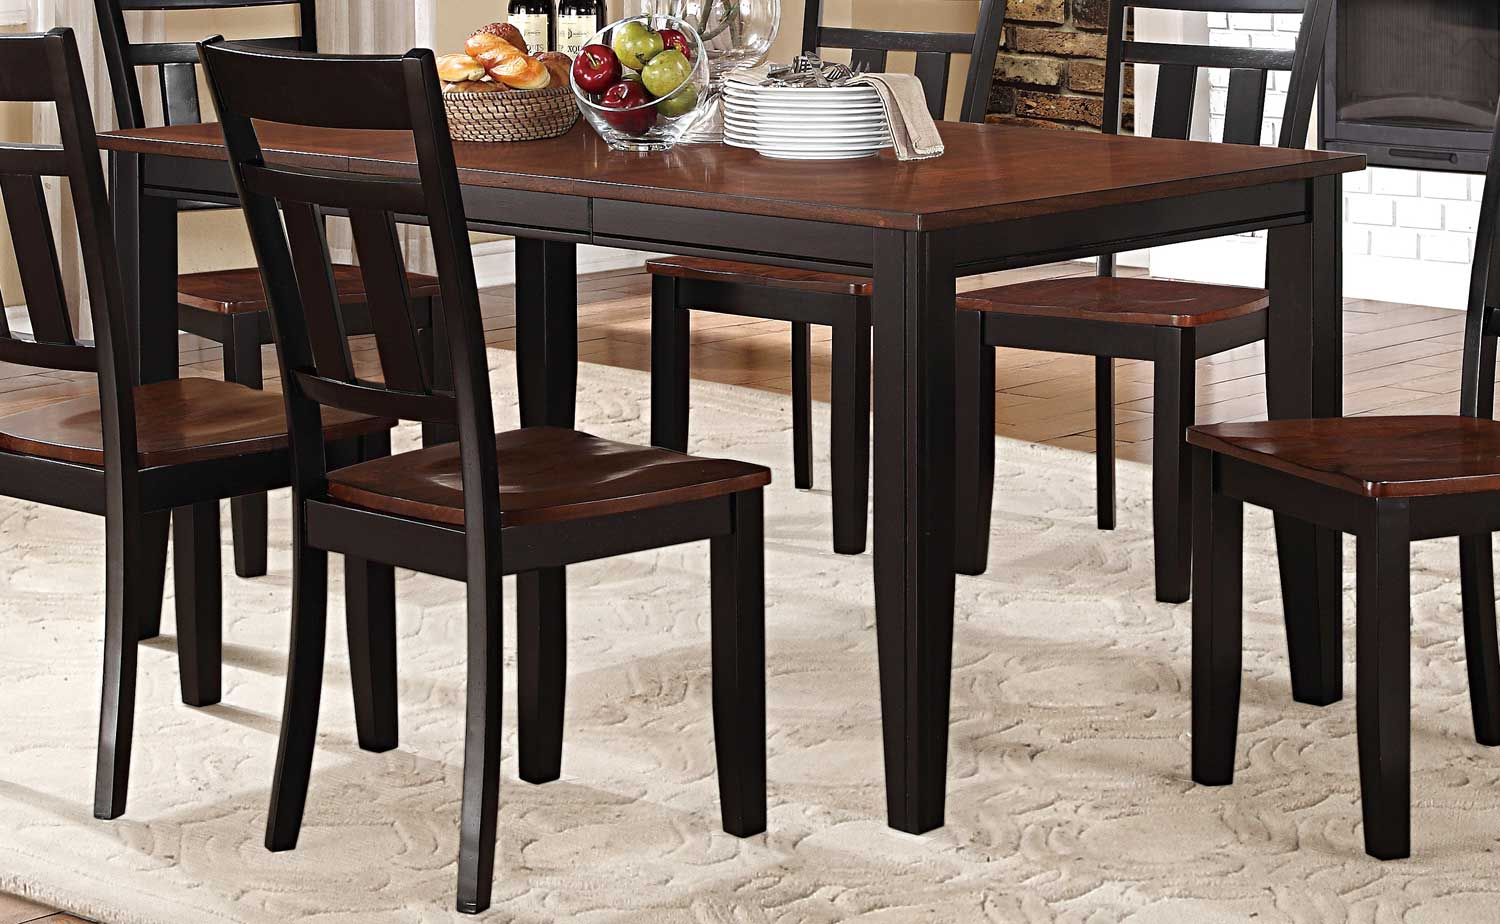 Details about addington farmhouse two tone kitchen dining for 2 tone dining room tables